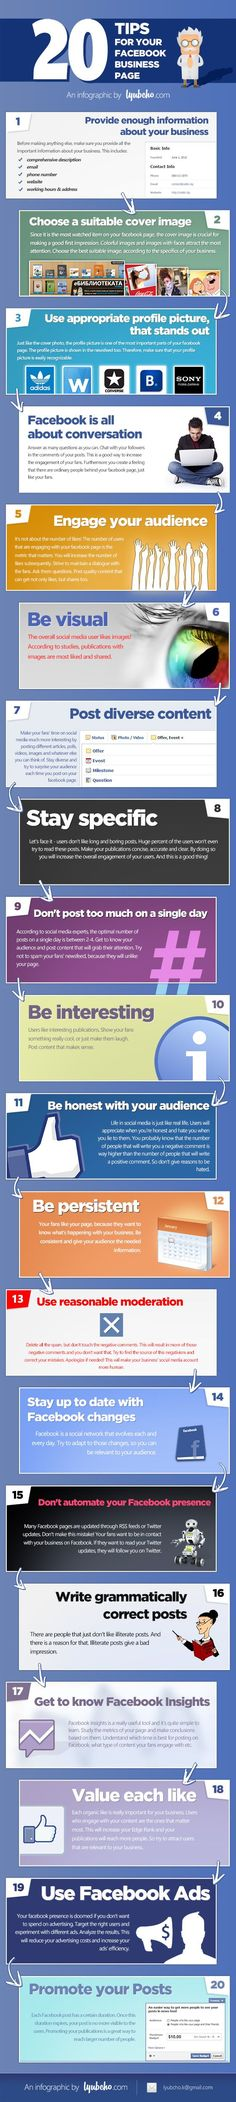 20 Very Easy Ways to Improve Your Facebook Page